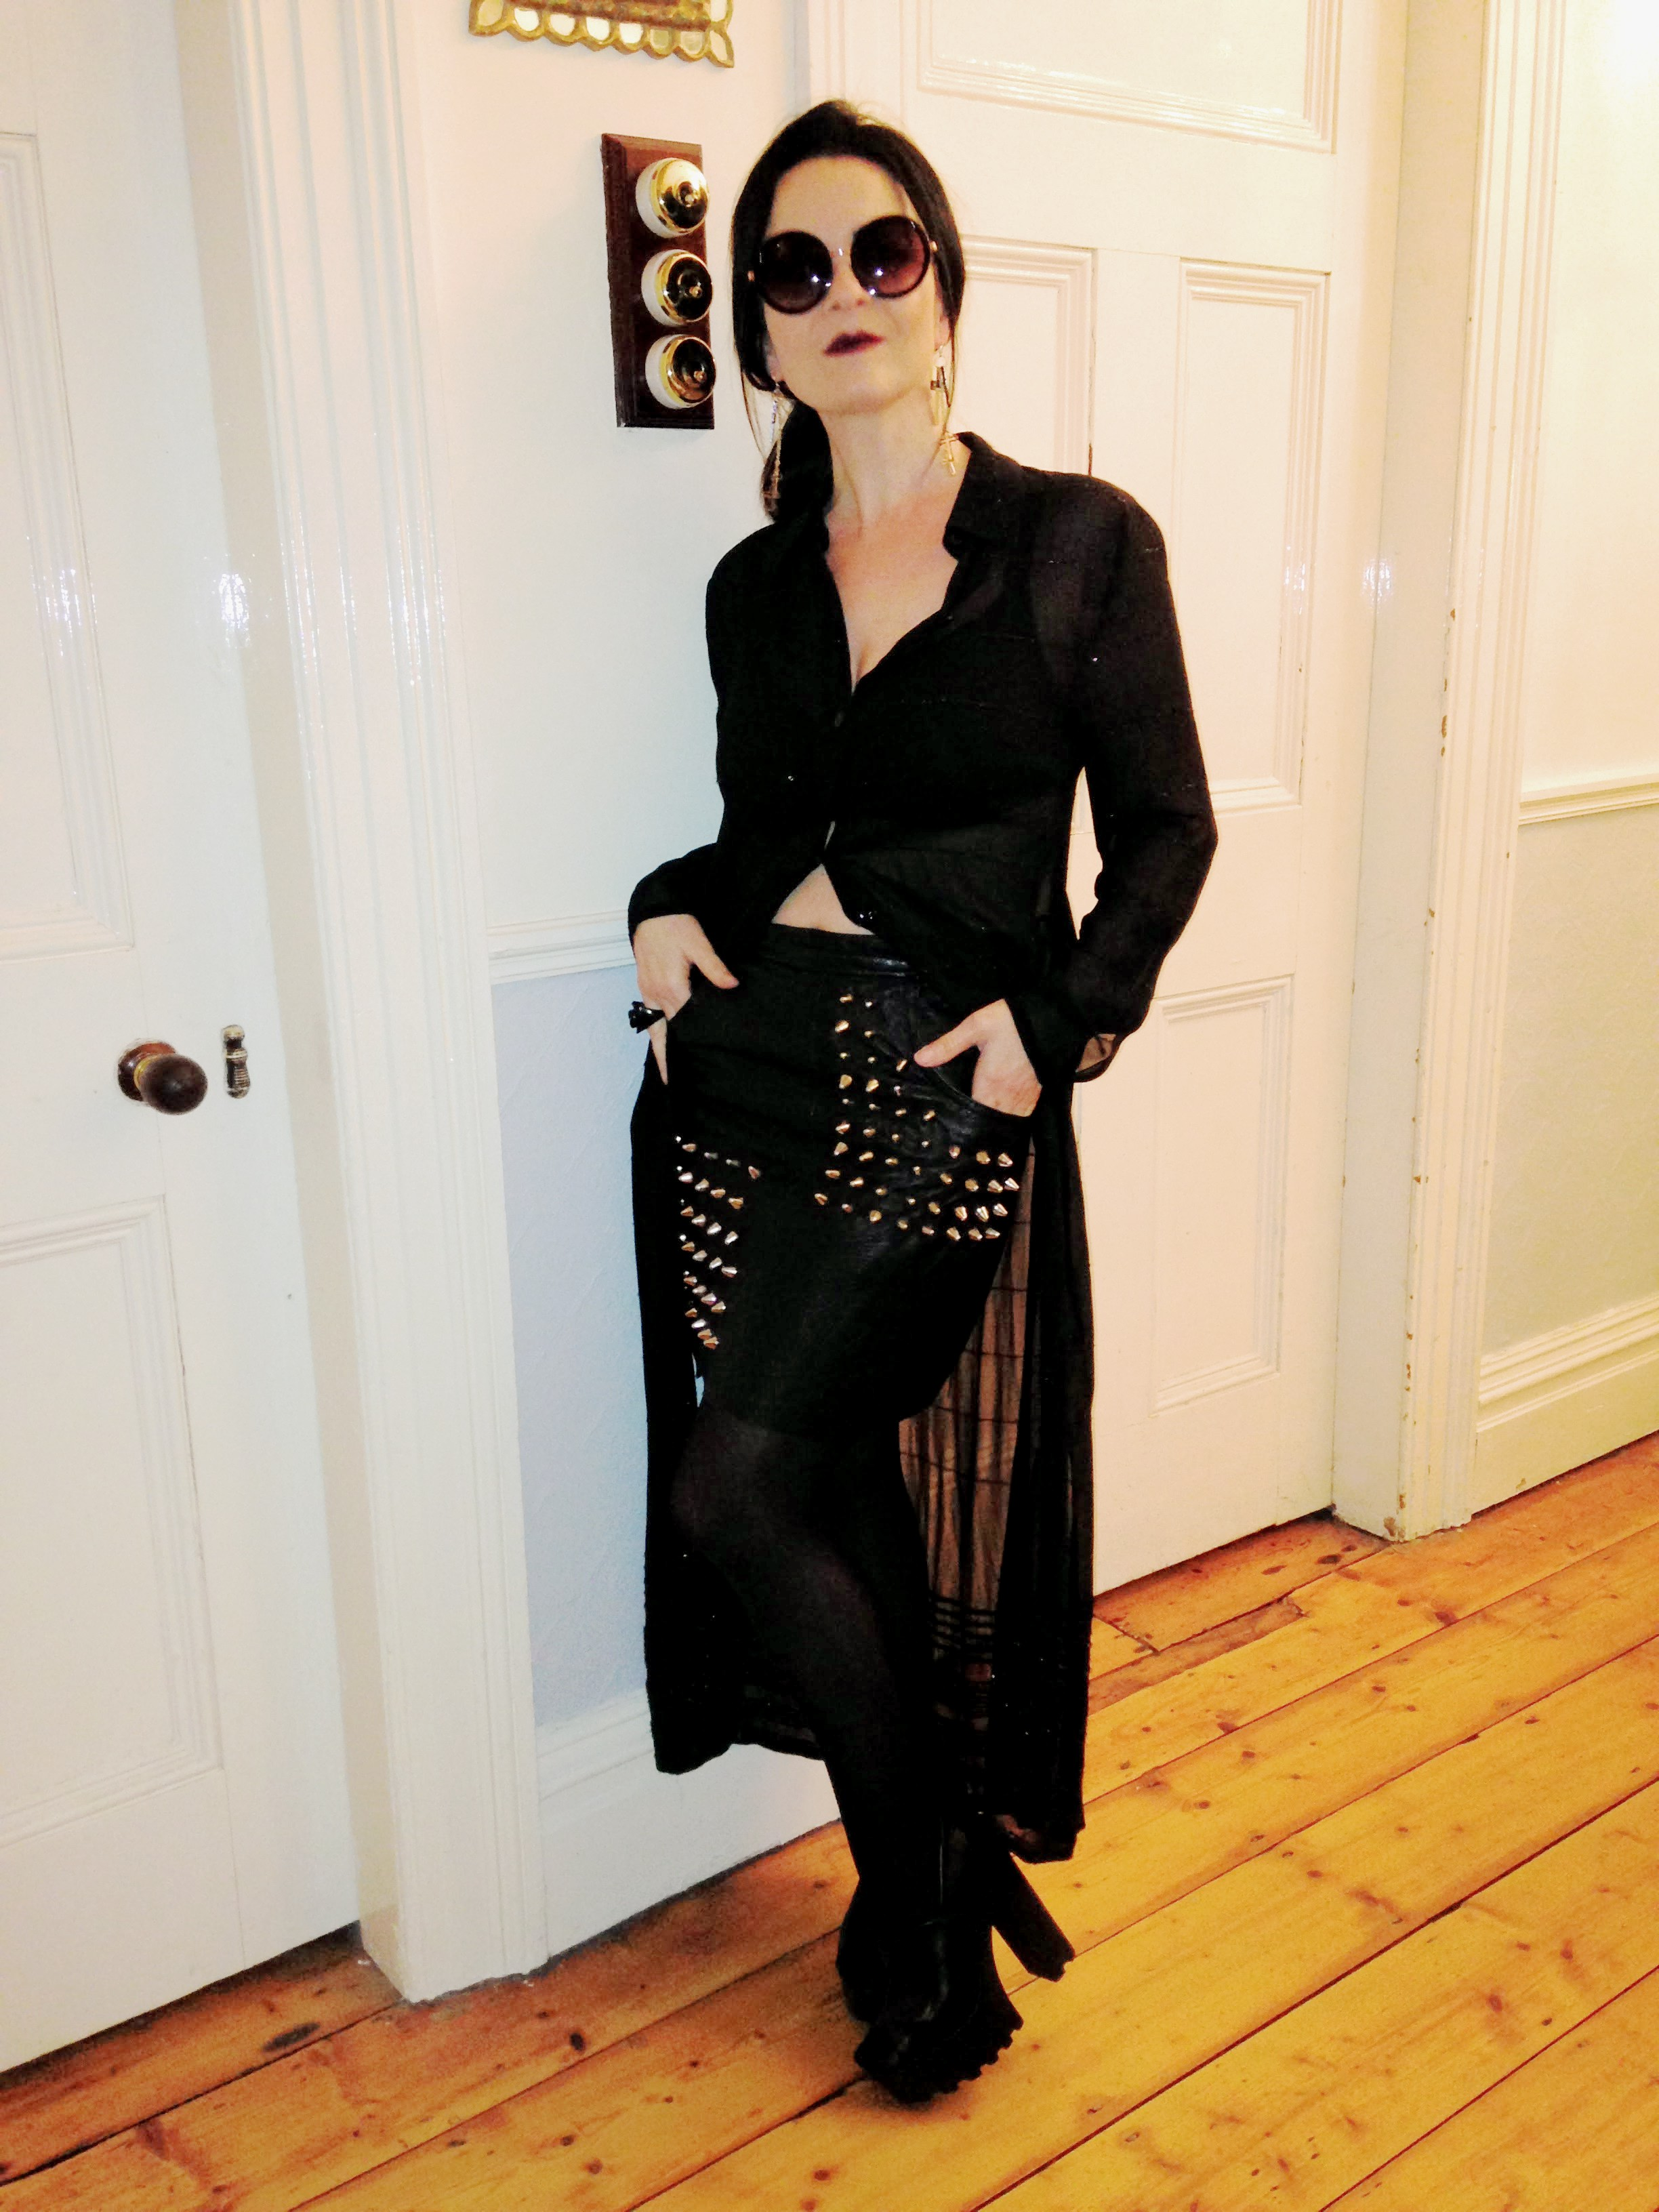 This look a re-worked black leather mini skirt with spike details. Tough Goth! Ha ha!